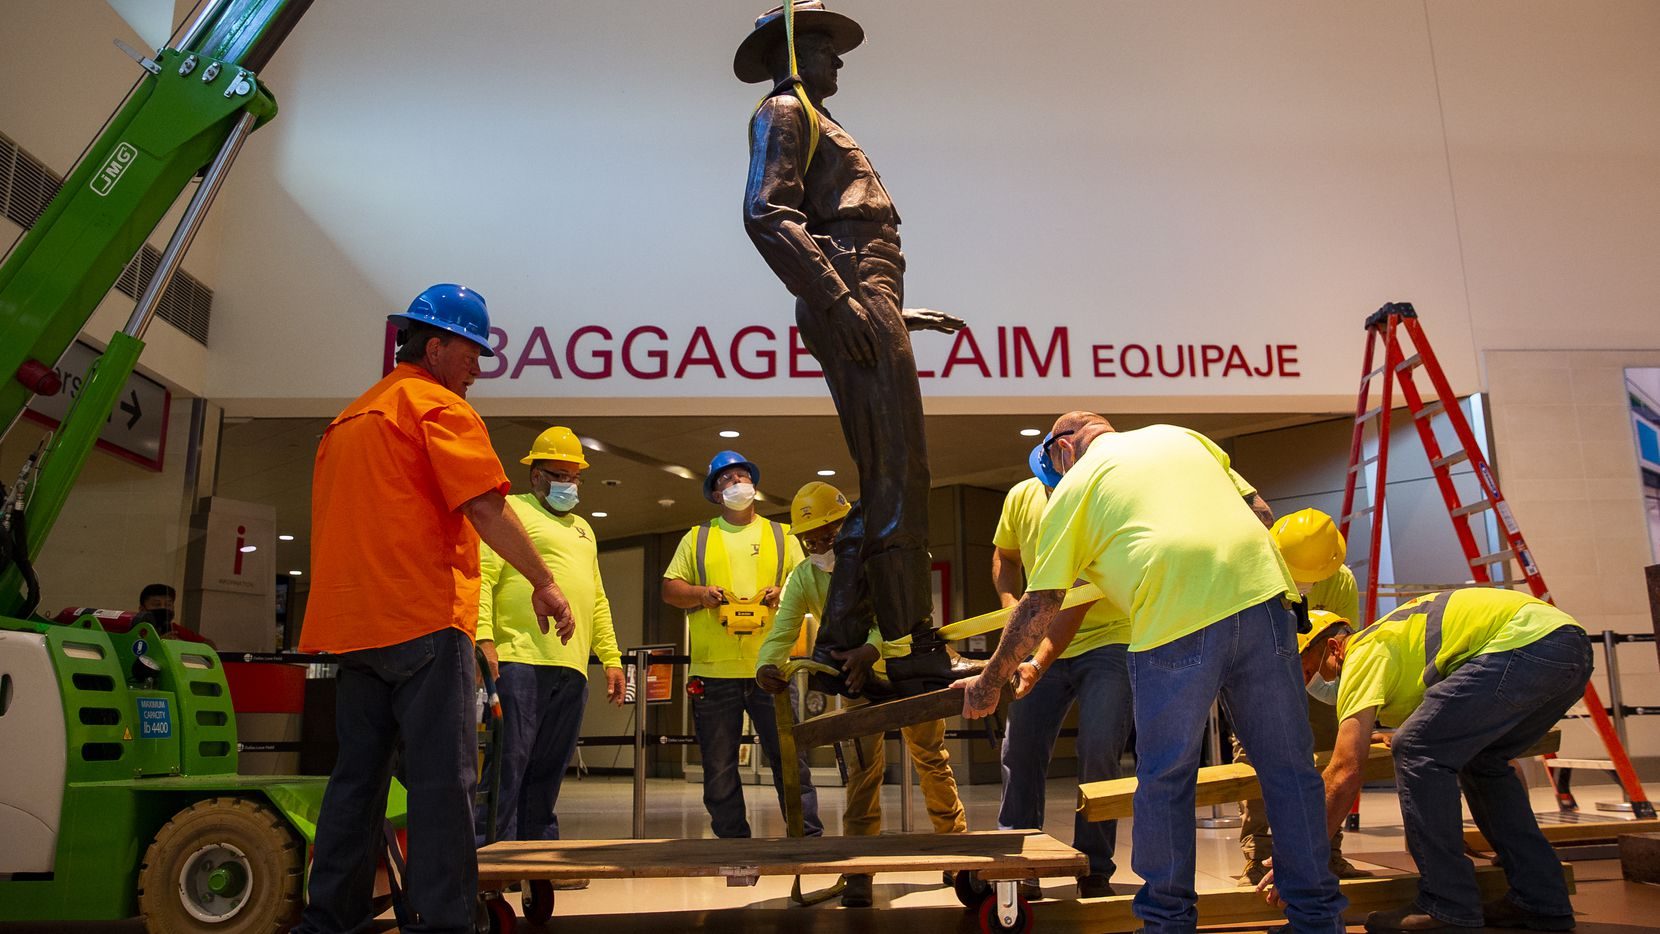 Texas Ranger Statue at Love Field Removed Over Concerns About Racist History